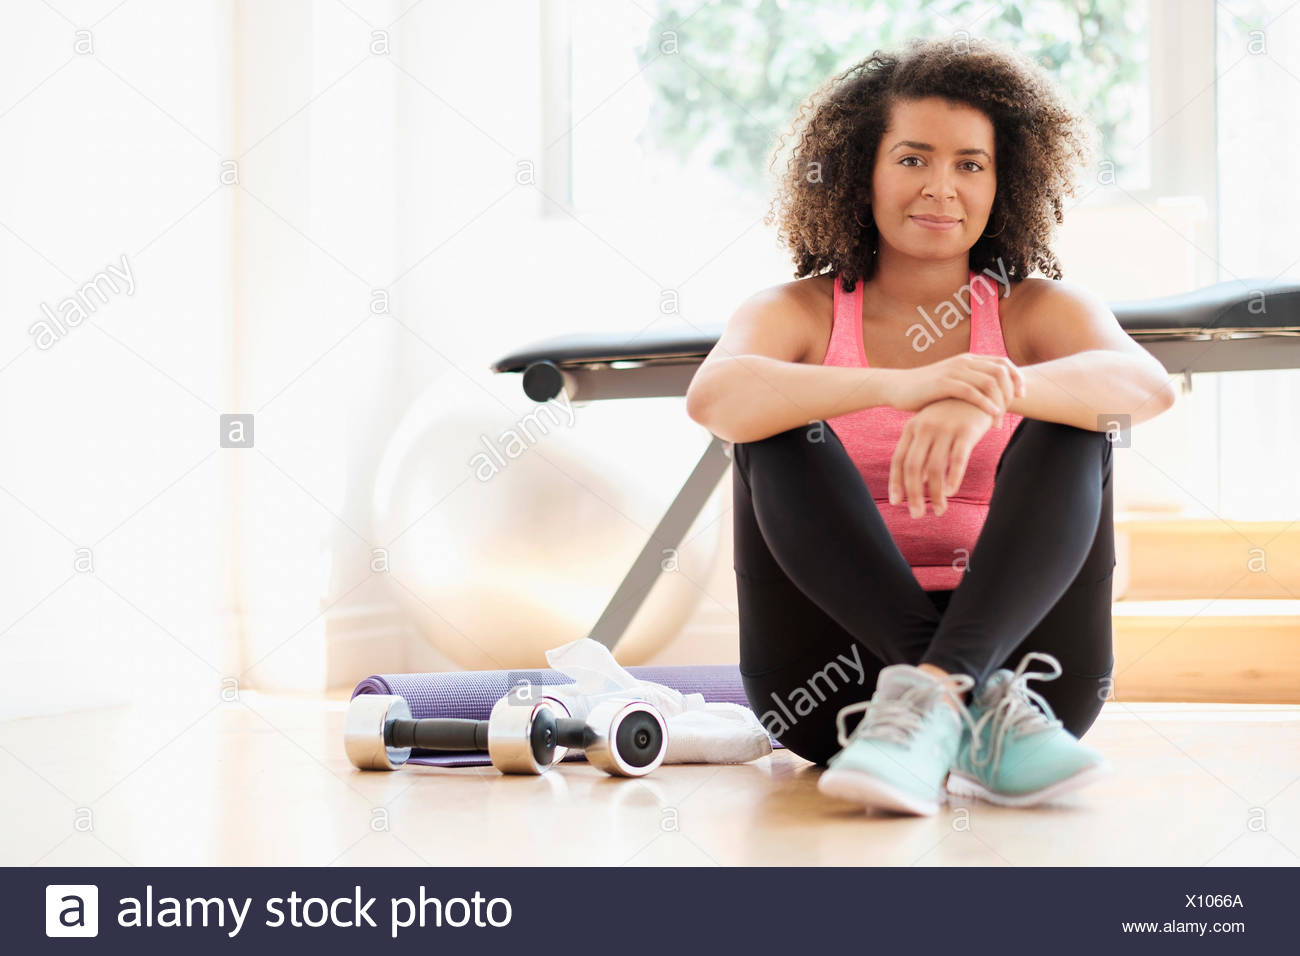 Portrait of young woman at gym Photo Stock